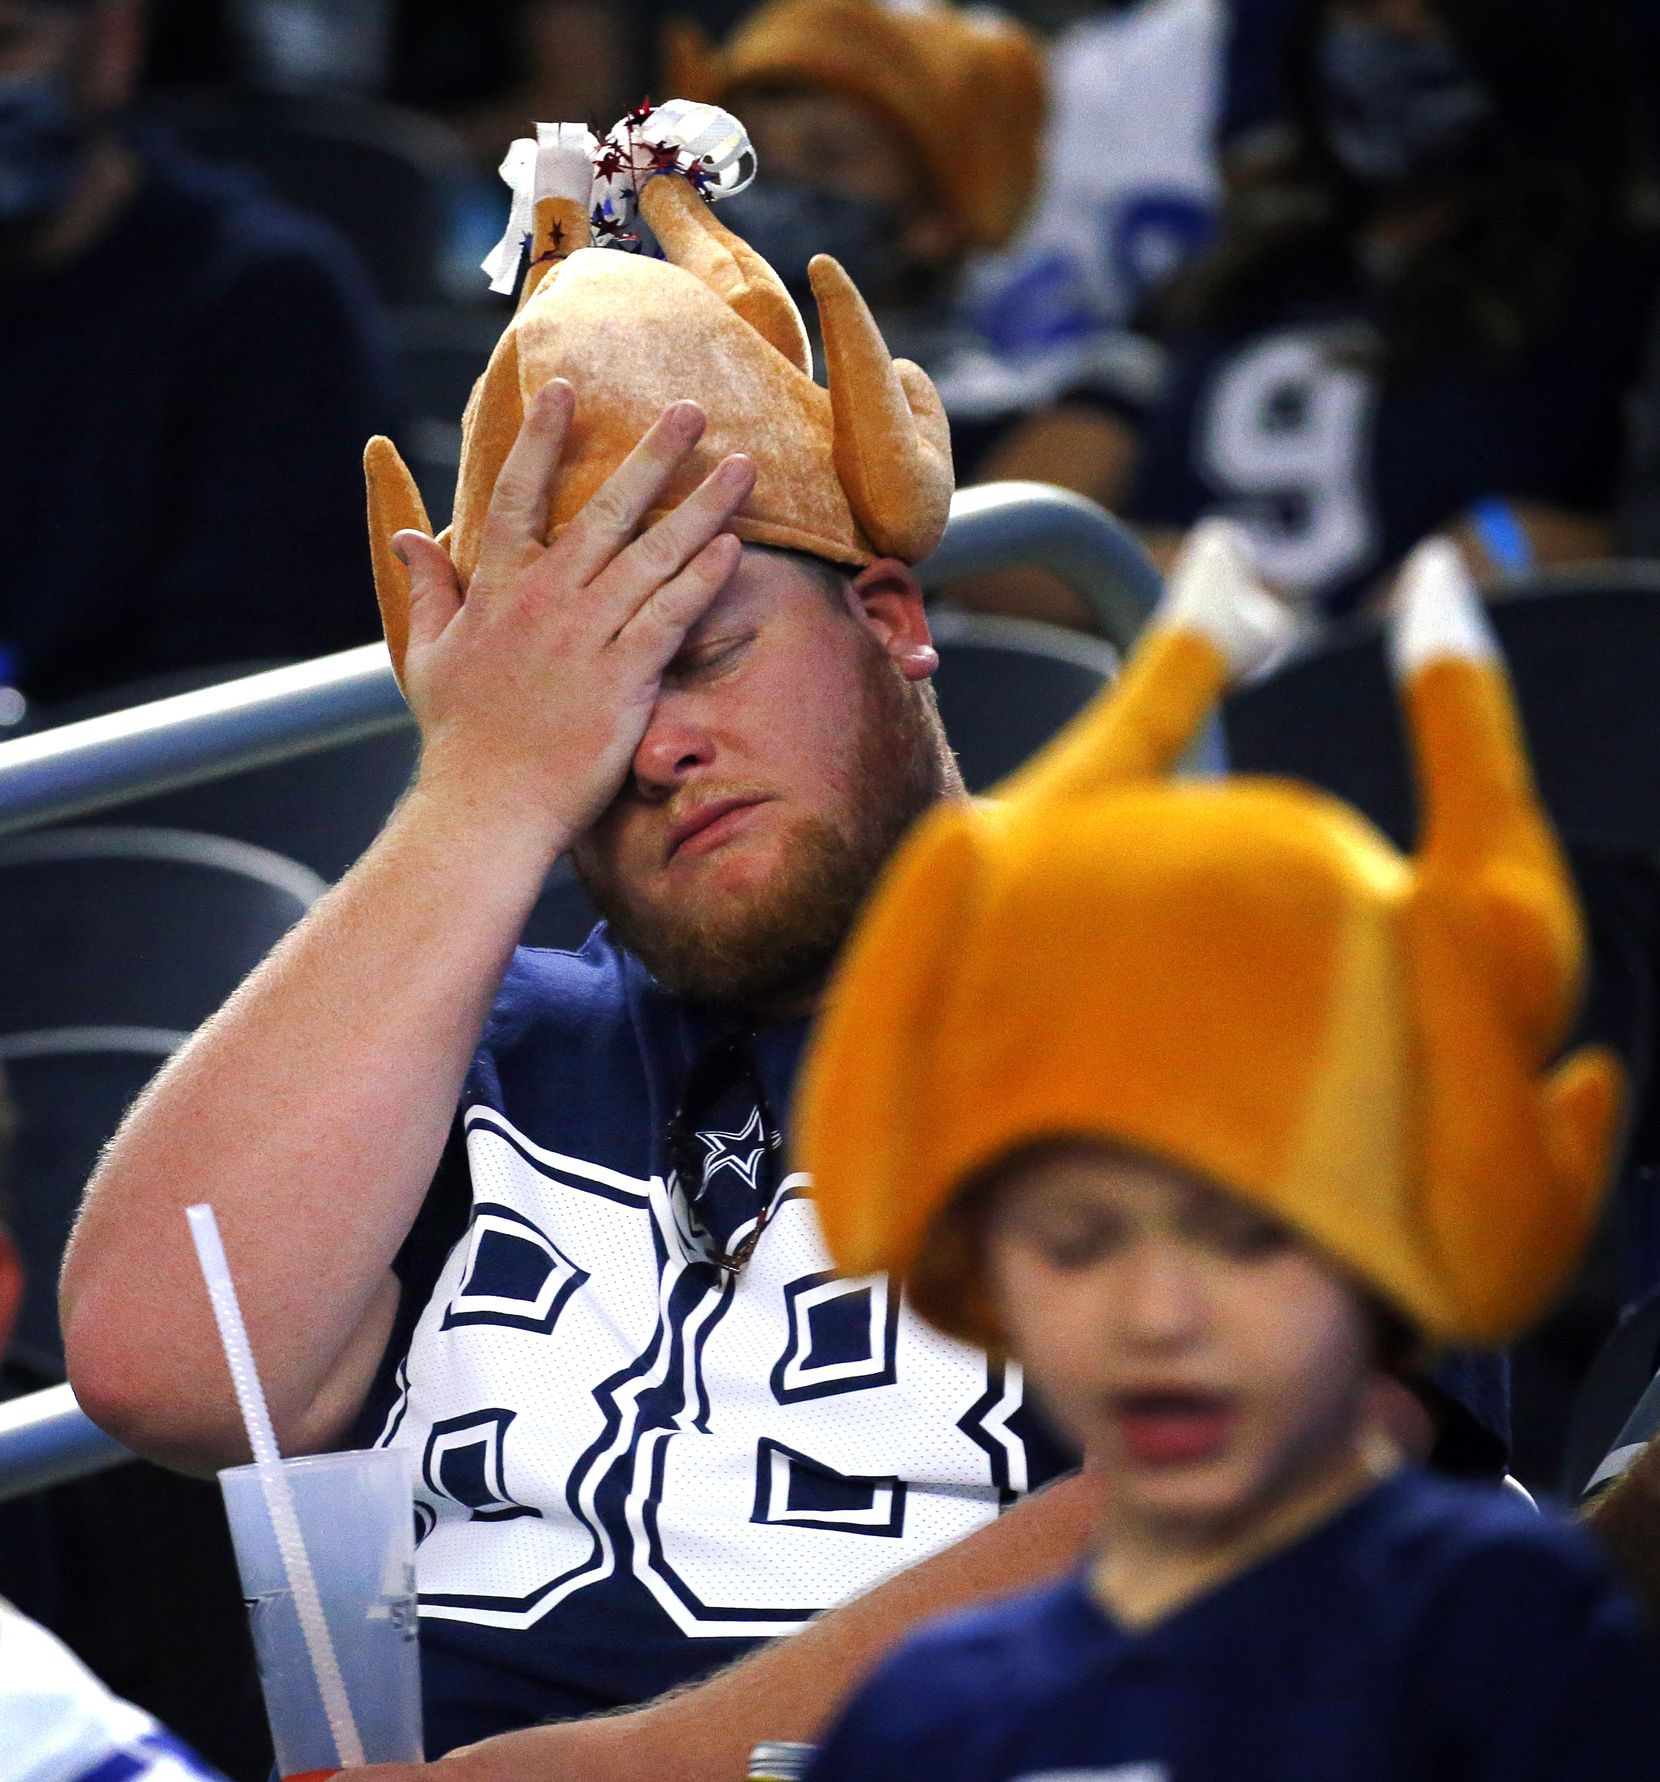 Dallas Cowboys fan Alex Chambers reacts to a missed played Cowboys drive against the Washington Football Team in the  quarter at AT&T Stadium in Arlington, Thursday, November 26, 2020. (Tom Fox/The Dallas Morning News)